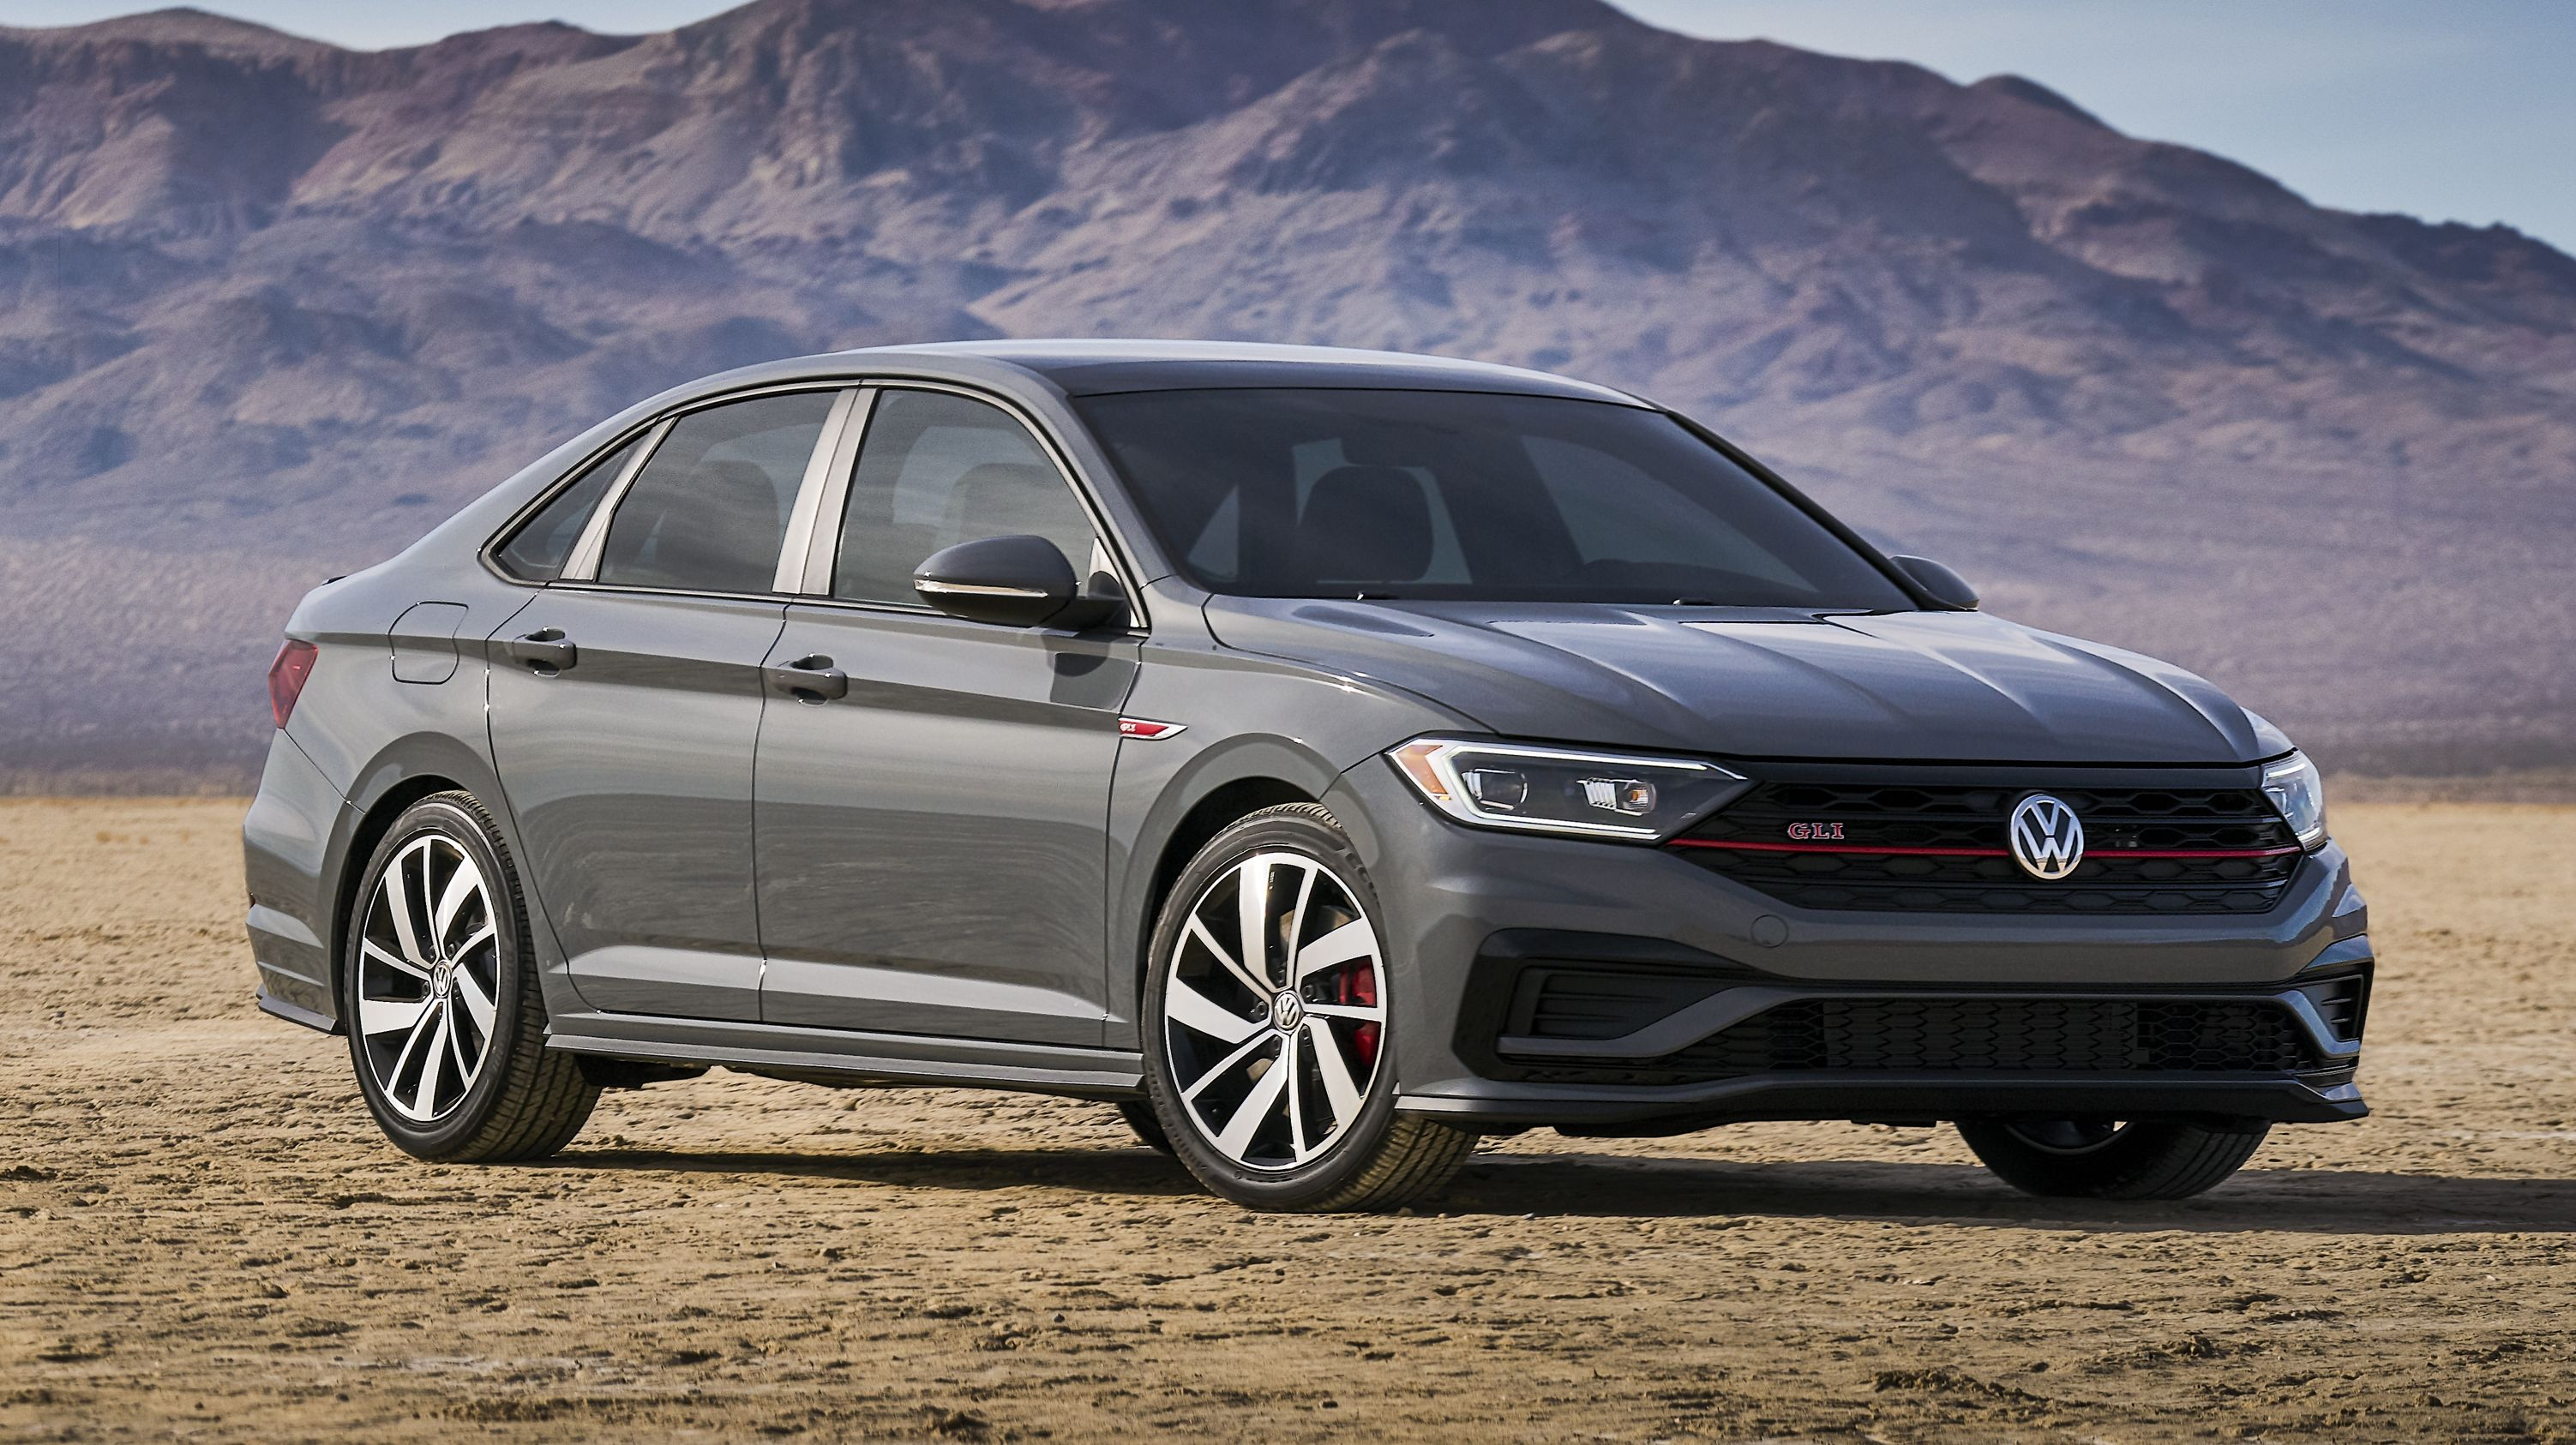 5 Reasons The 2020 Volkswagen Jetta Gli Needs A Gti Badge Asap Top Speed Volkswagen Jetta Jetta Gli Volkswagen